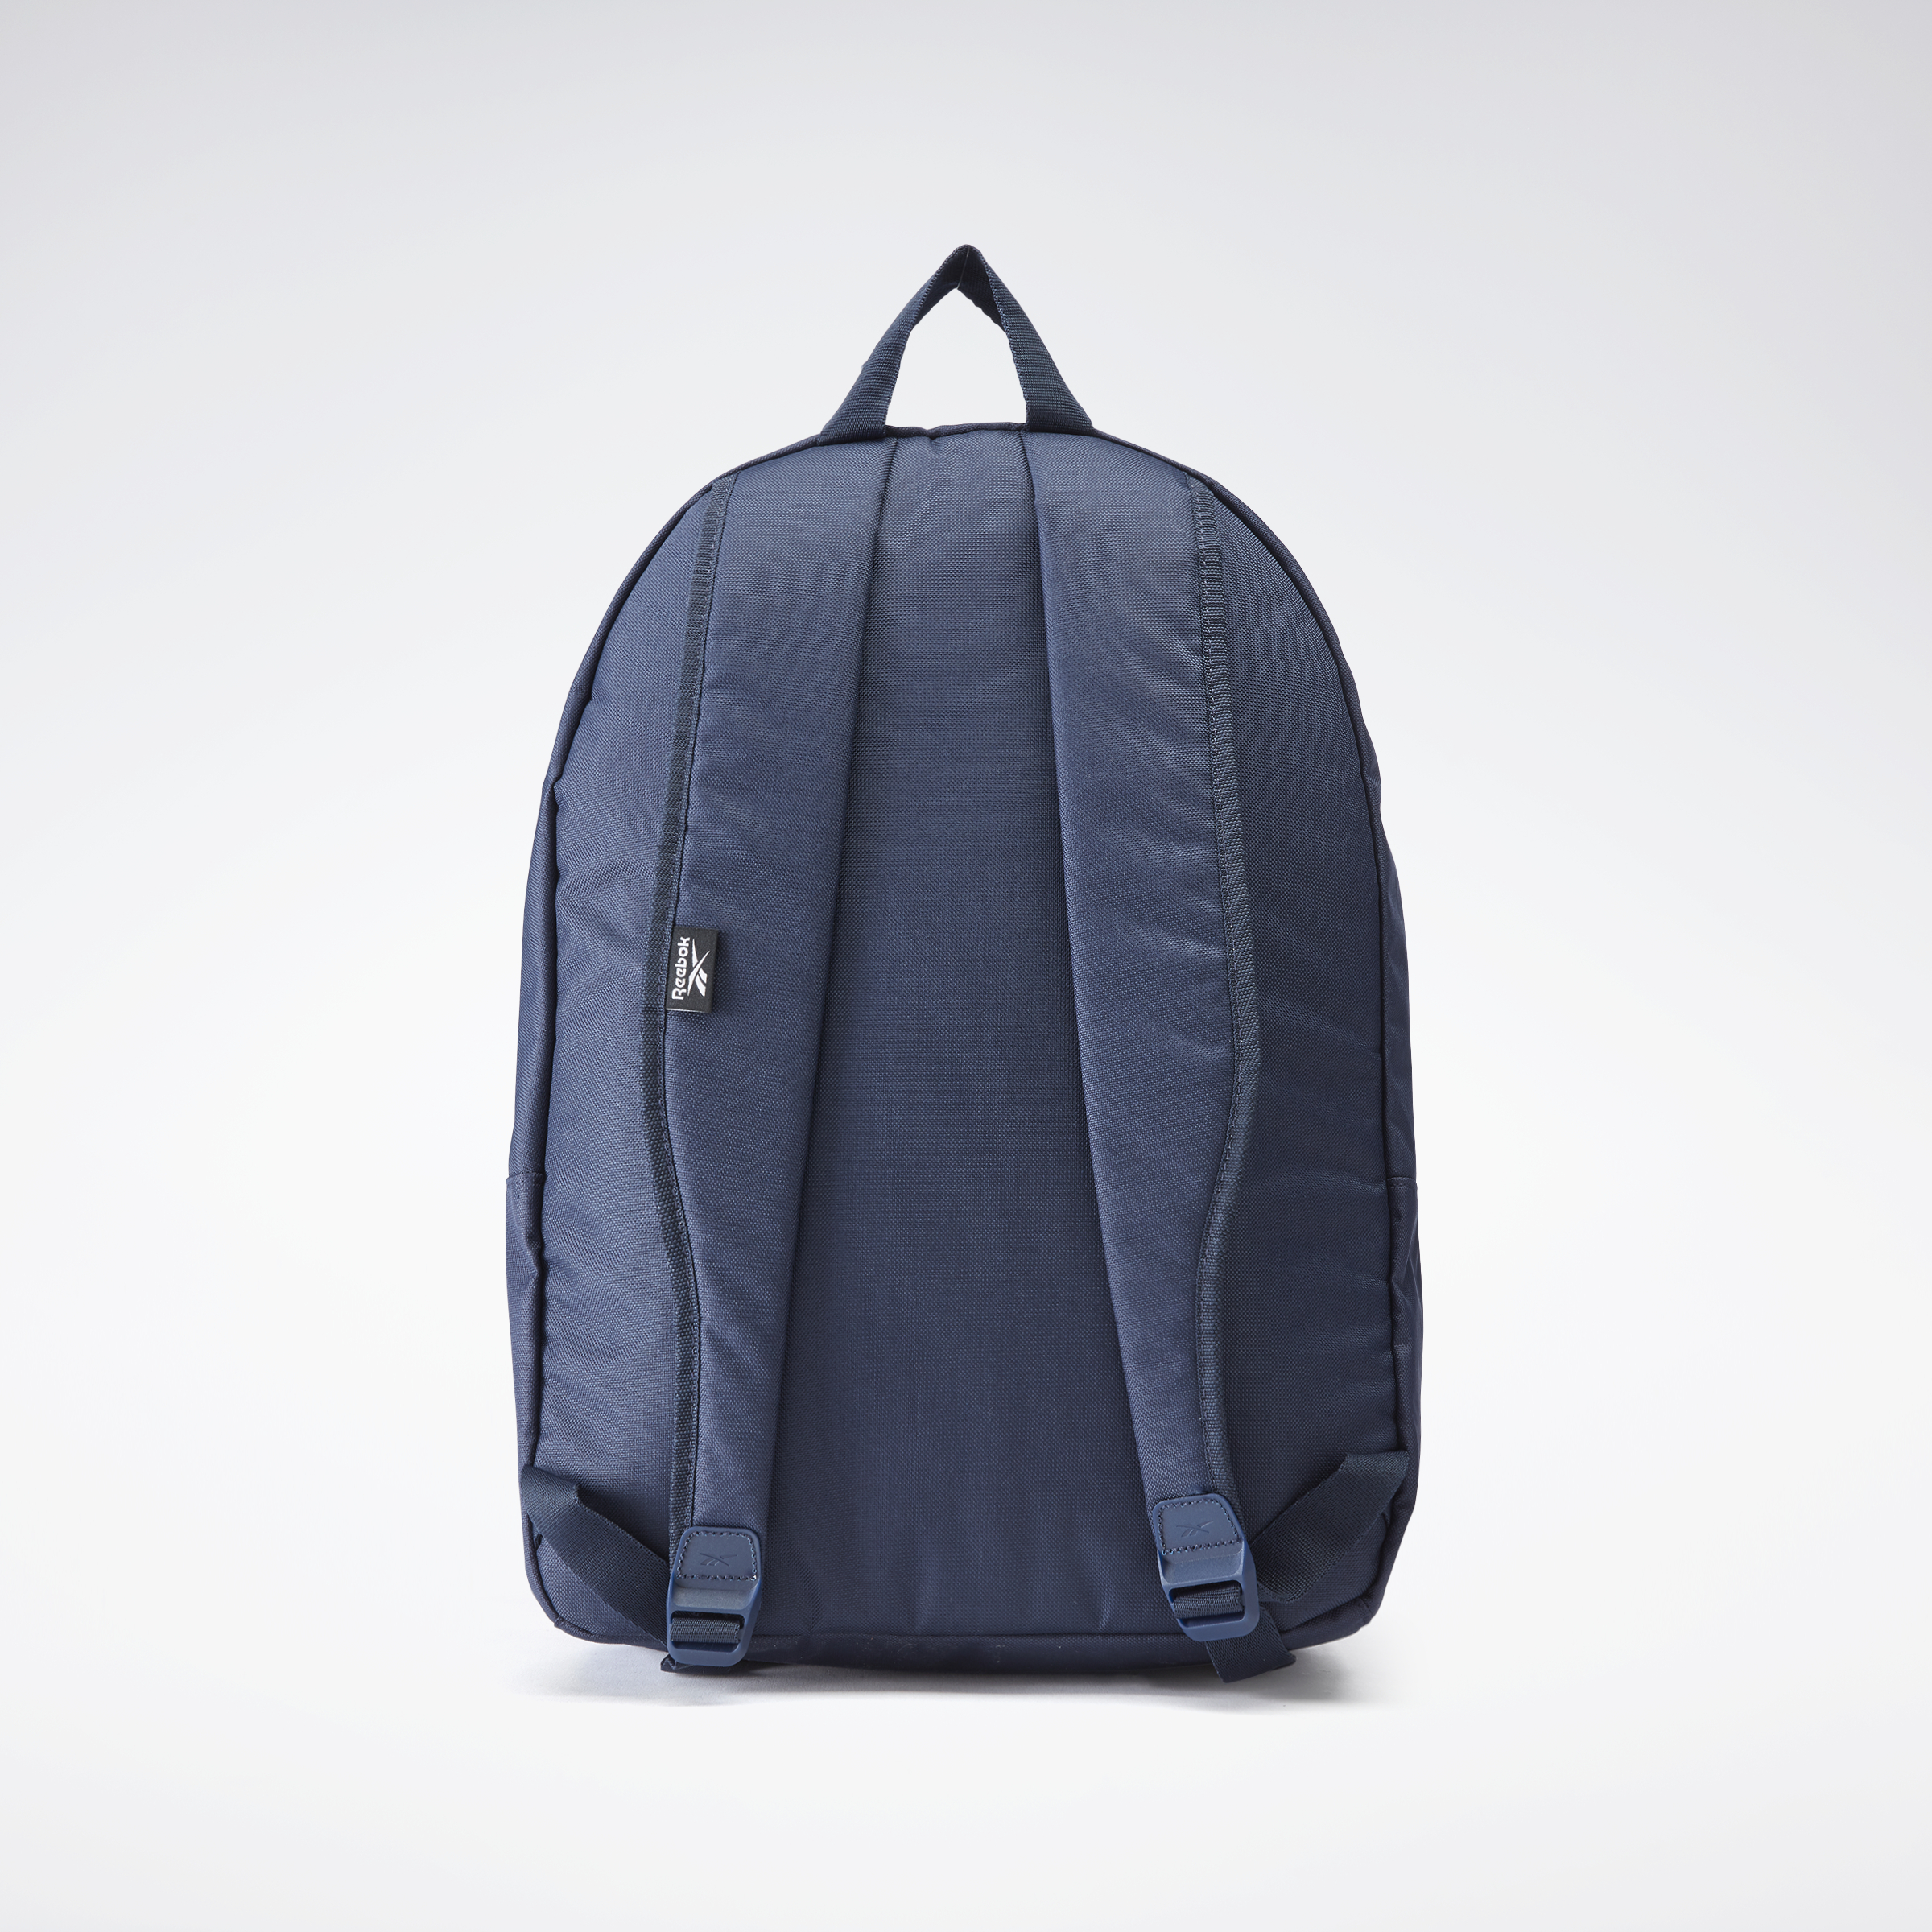 Indexbild 7 - Reebok Sport Active Core Backpack Small Herren, Damen Taschen Rucksäcke